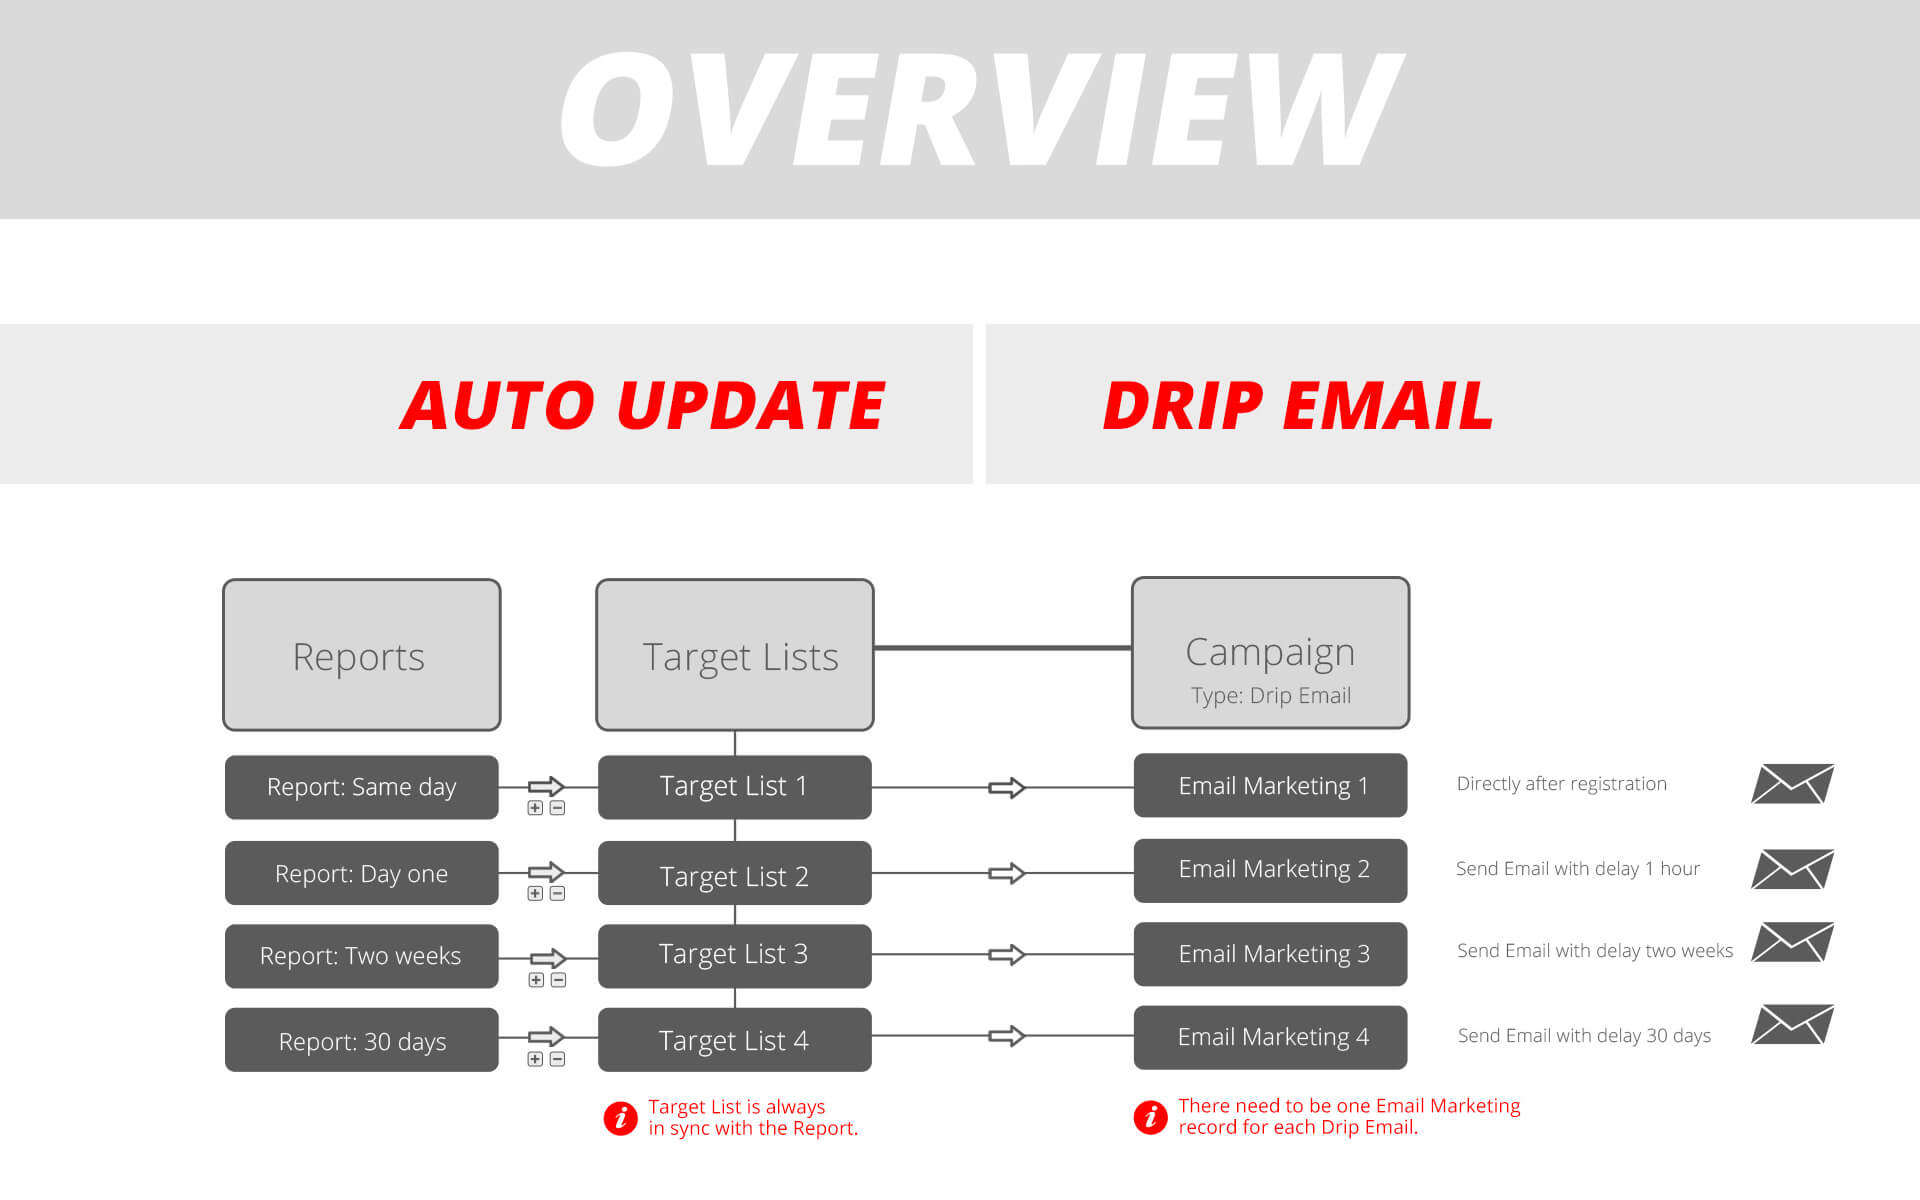 Drip Email Campaigns - Overview